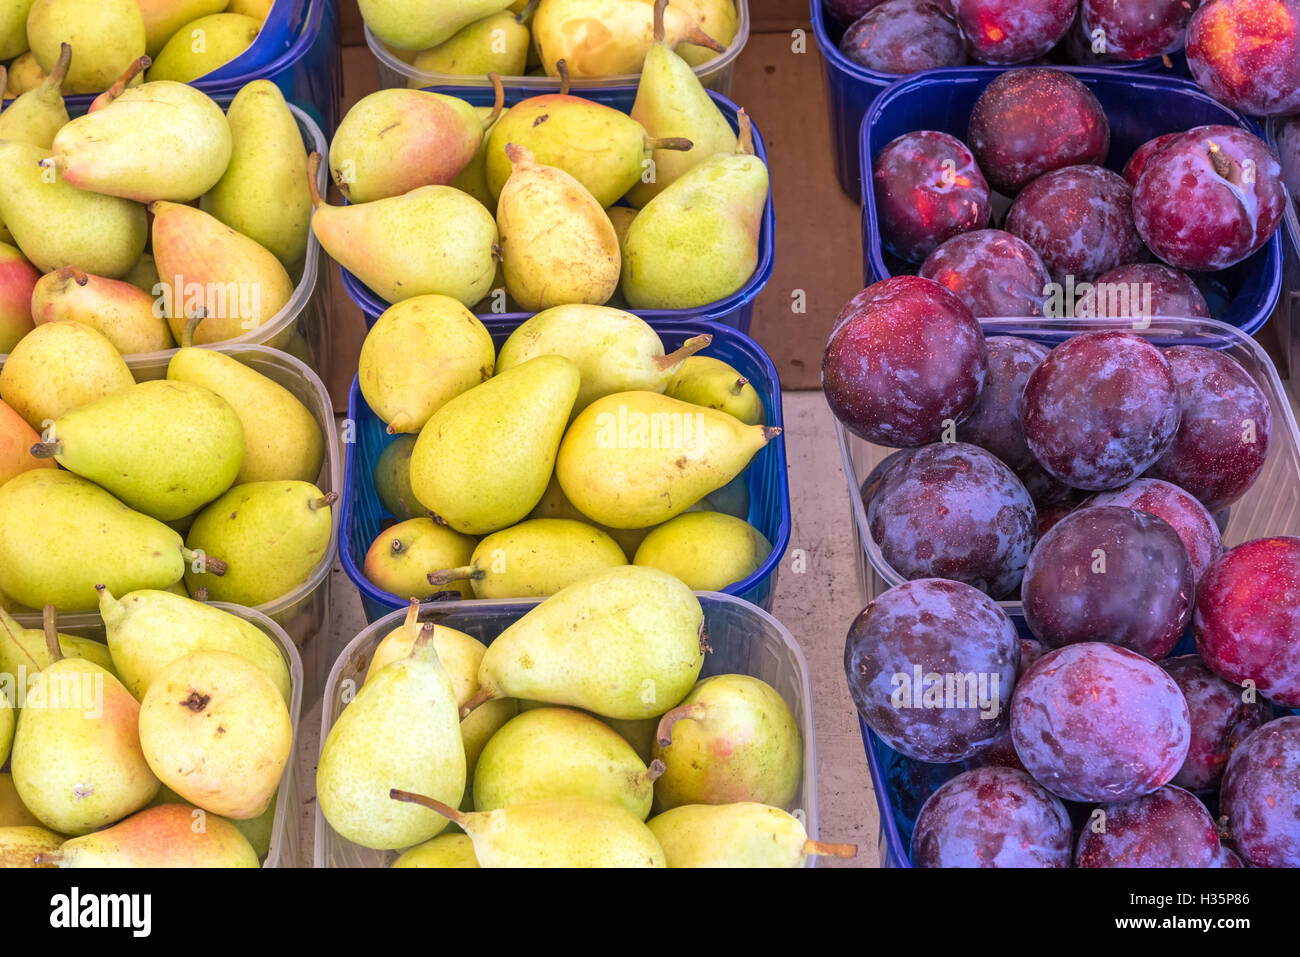 Plums and pears for sale at a market in Palermo - Stock Image